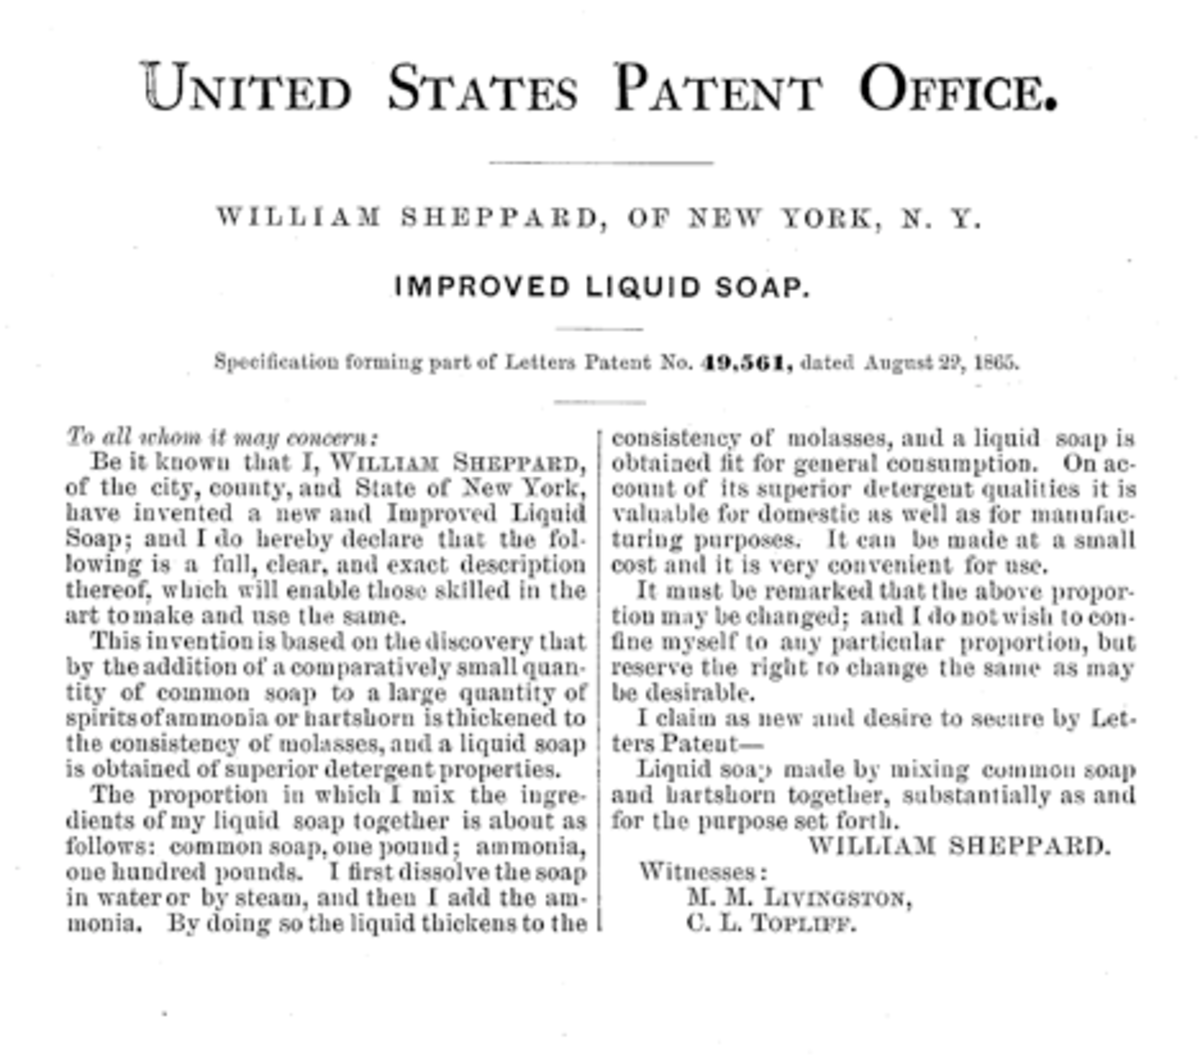 Specification forming part of Letters Patent No. 49,561, dated August 22, 1865.